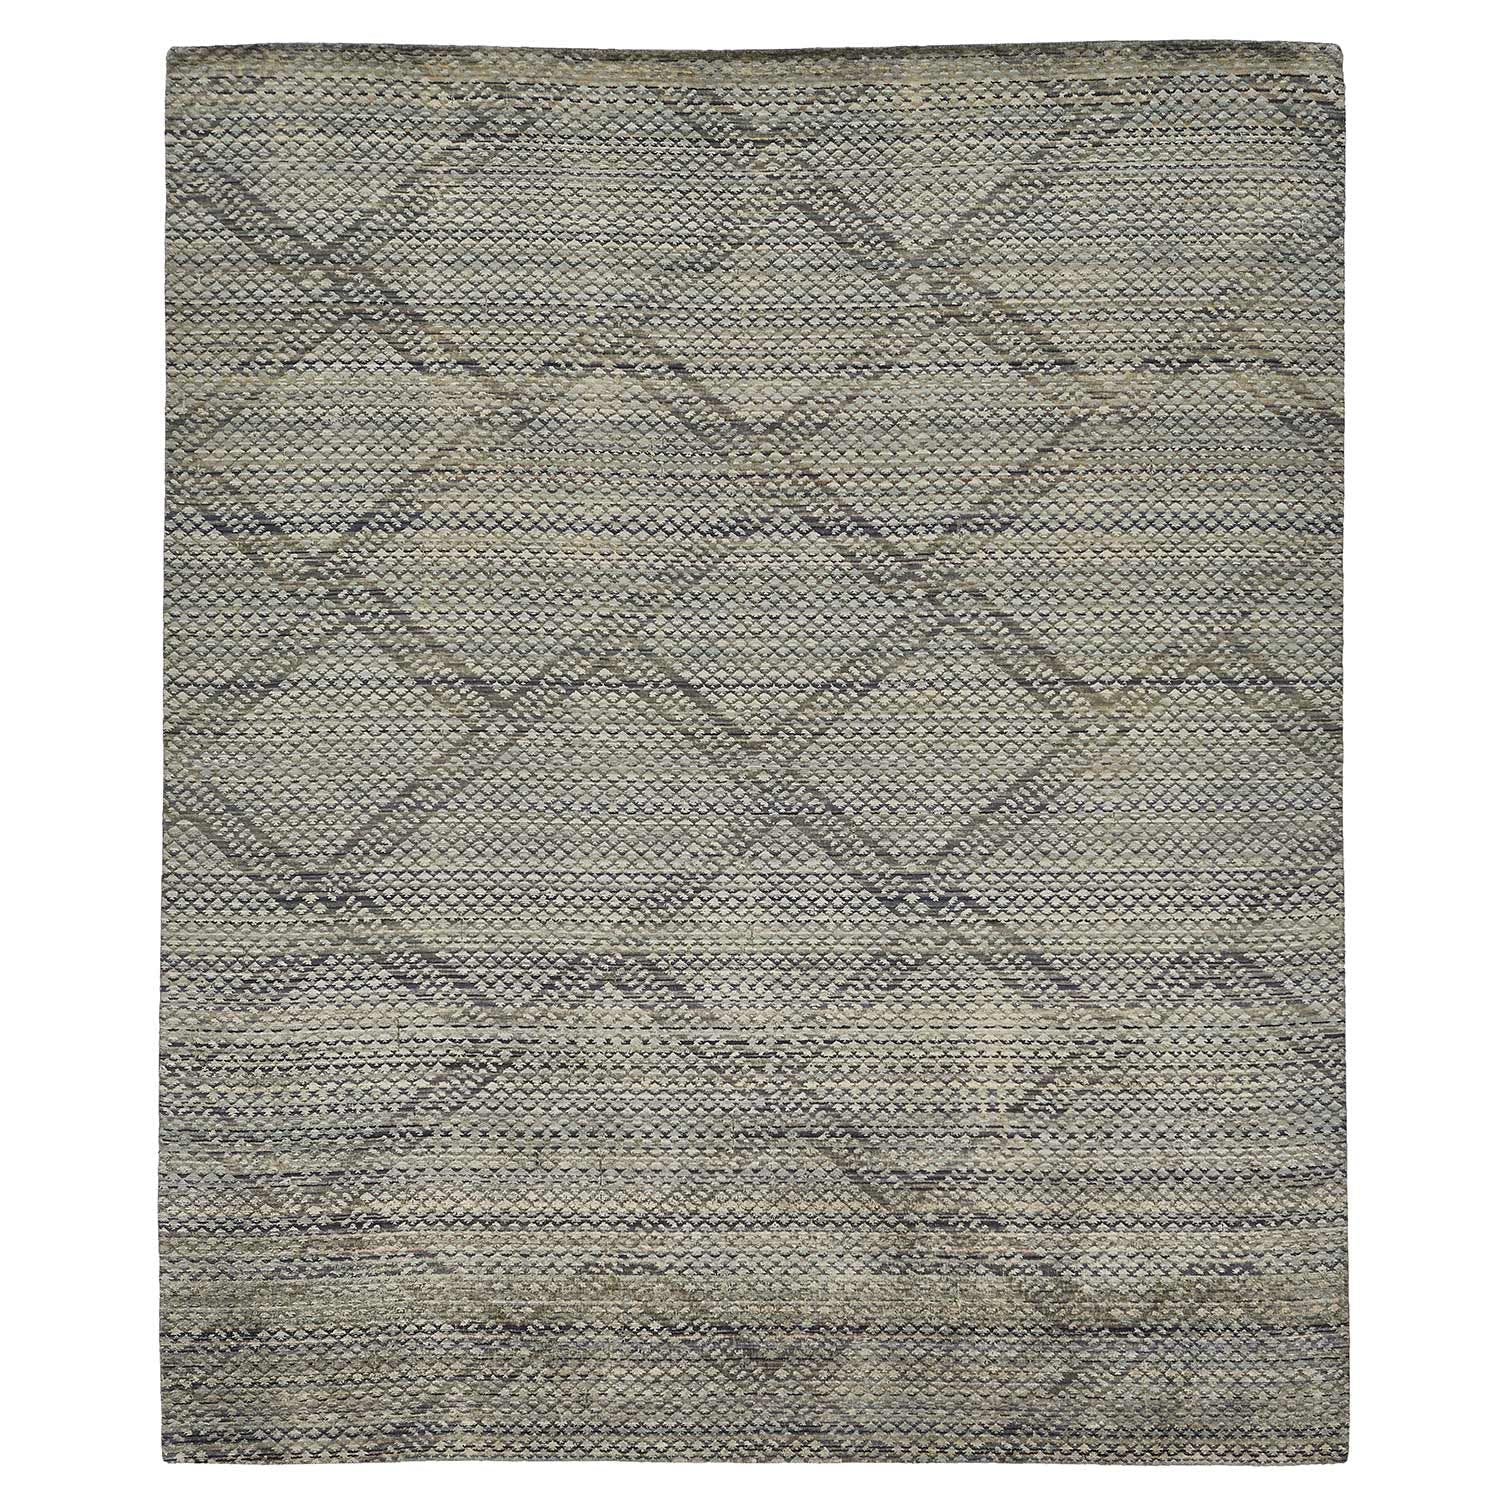 """Product Image - Contemporary Rug - 8'1""""x9'9"""""""